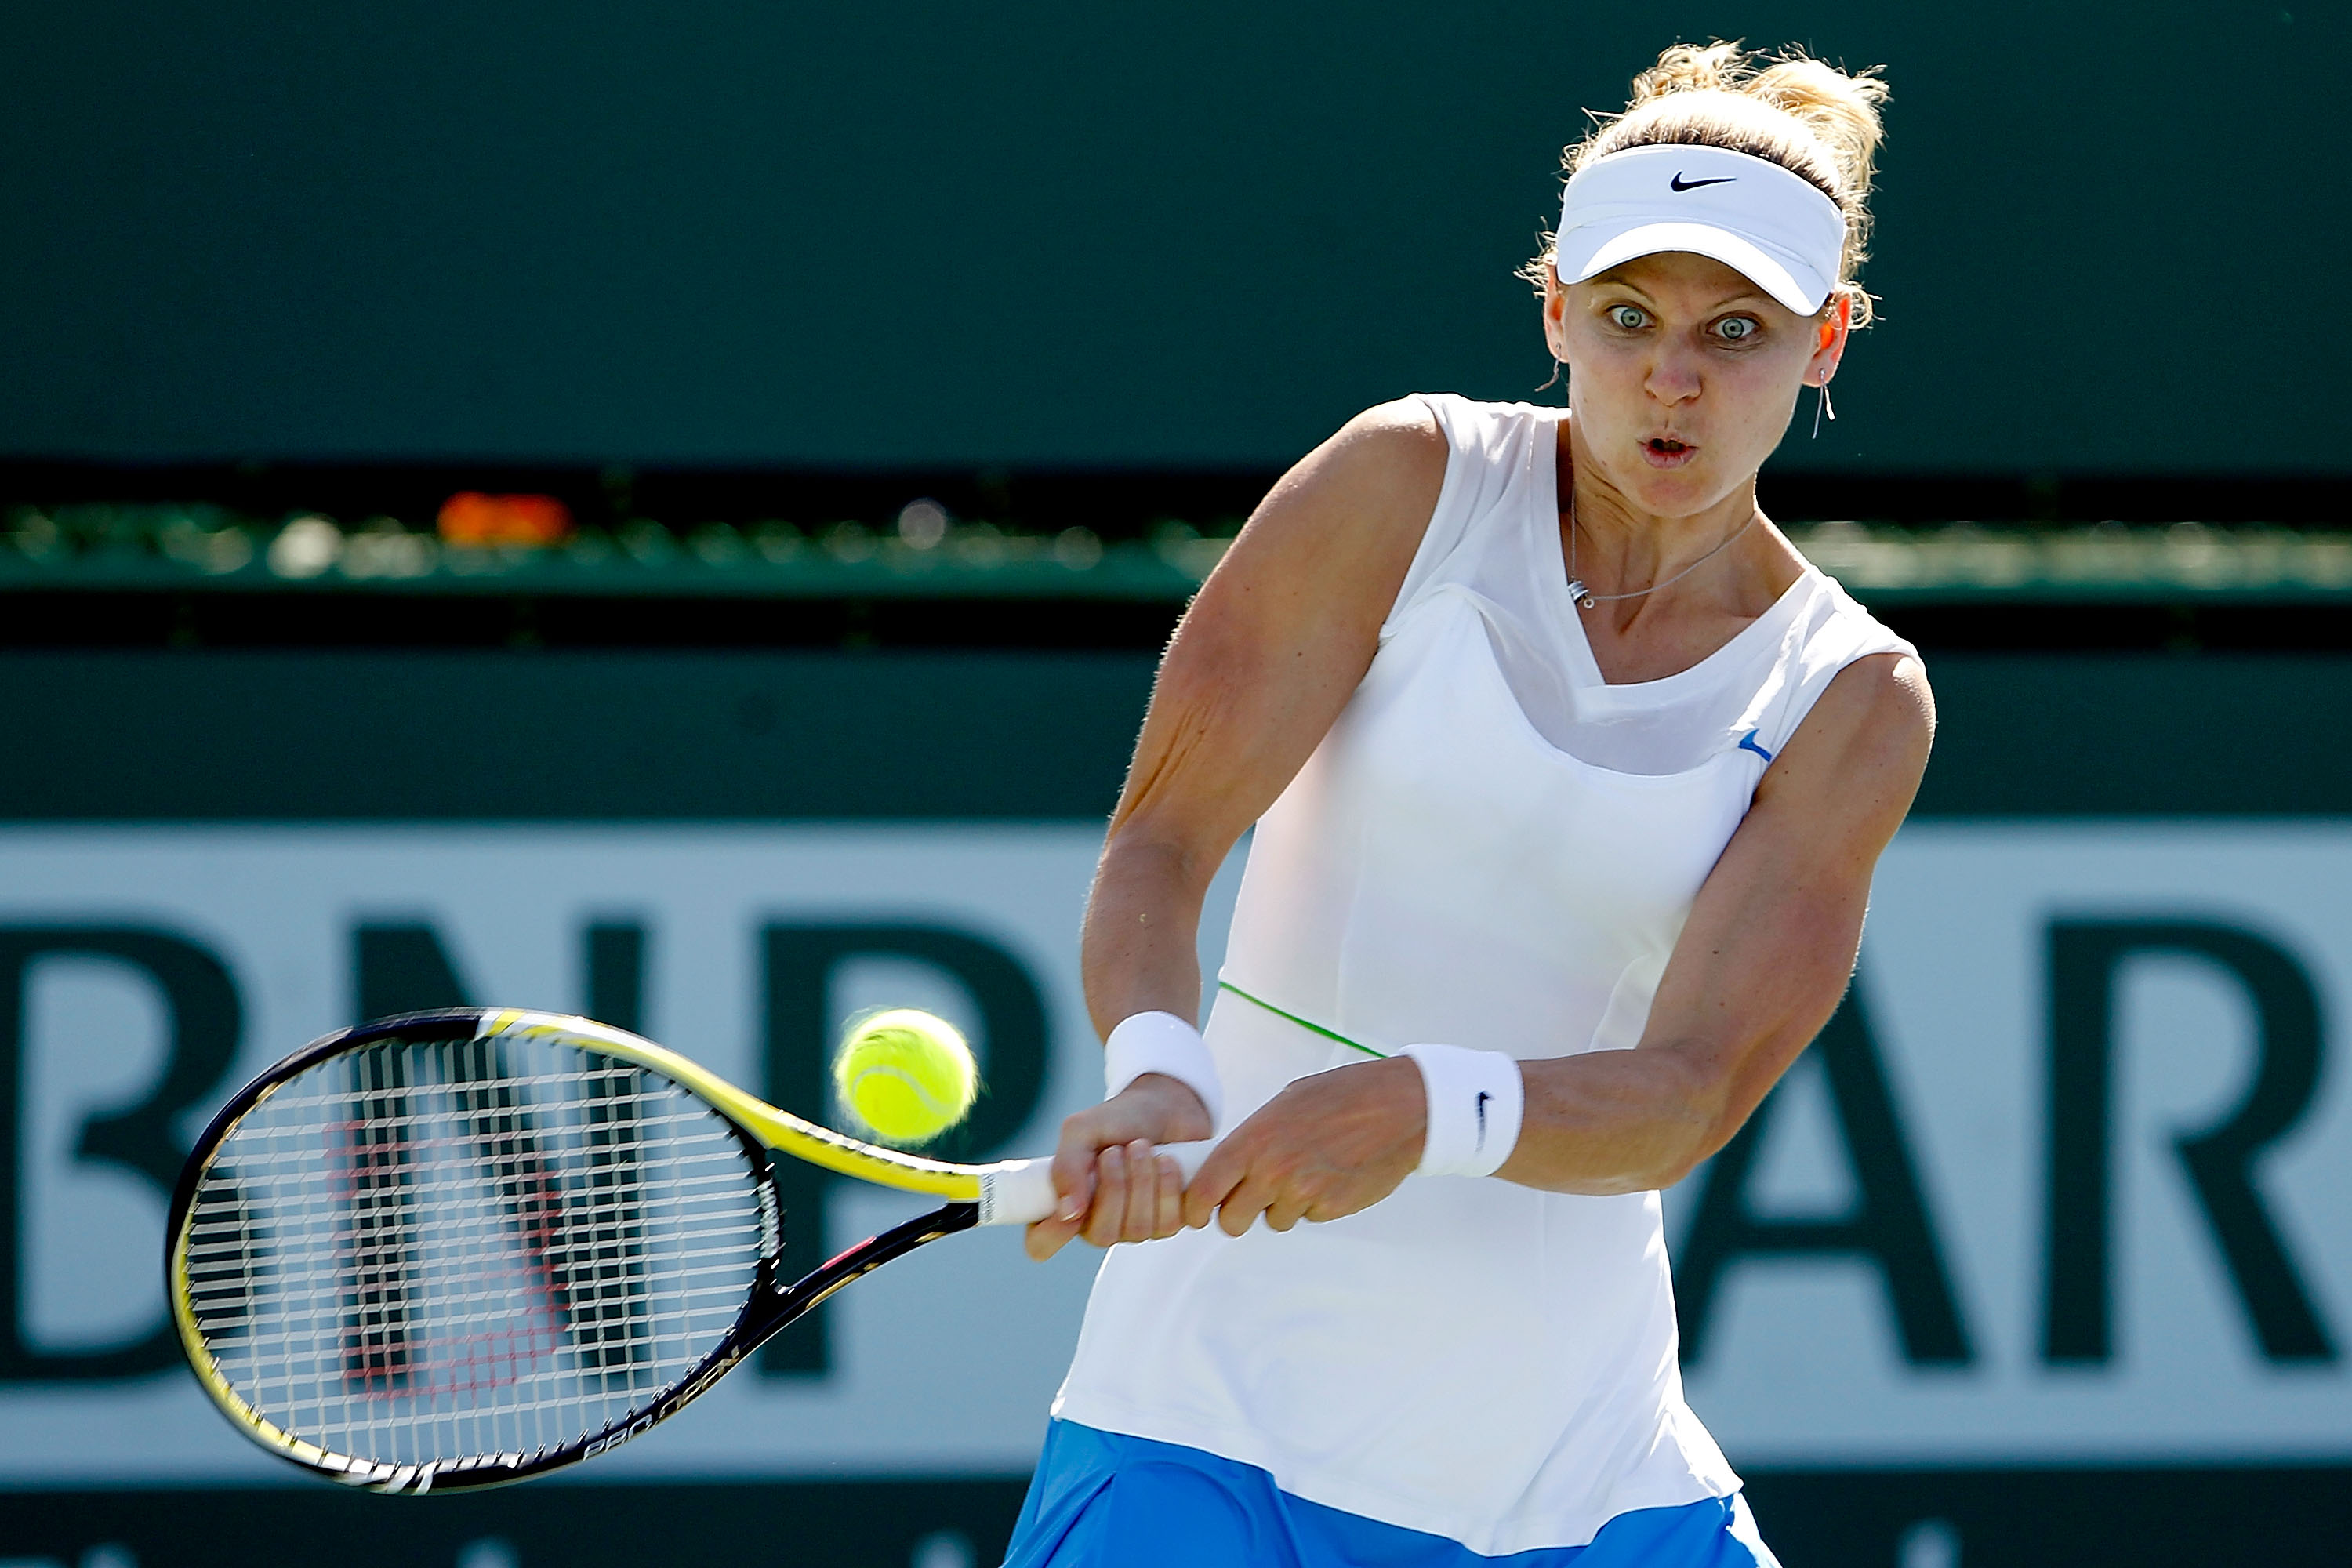 INDIAN WELLS, CA - MARCH 09:  Lucie Safarova of the Czech Republic returns a shot to Kristina Barrois of Germany during the BNP Paribas Open at the Indian Wells Tennis Garden on March 9, 2011 in Indian Wells, California.  (Photo by Matthew Stockman/Getty